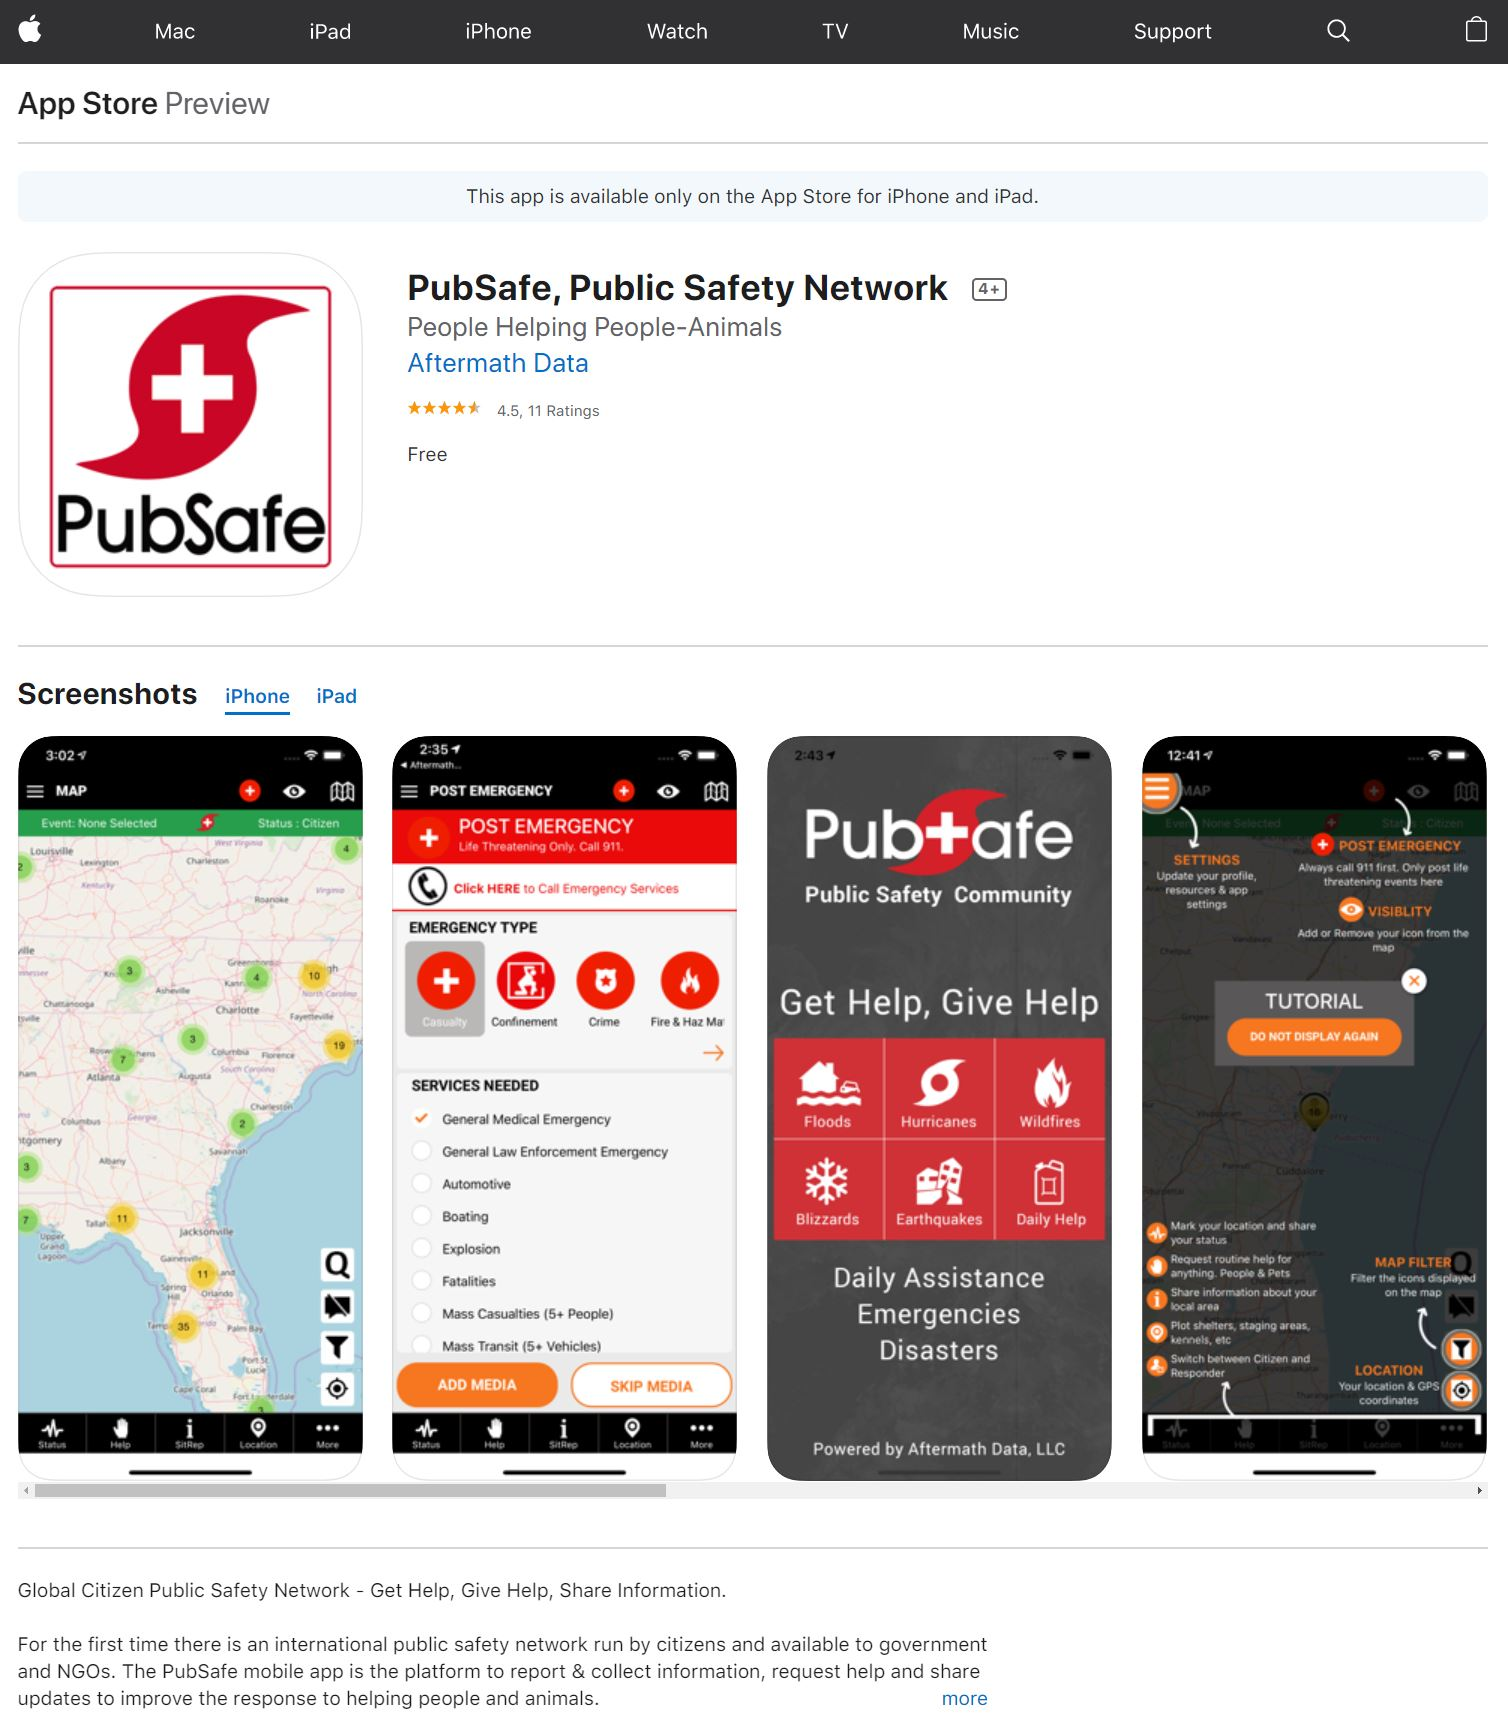 PubSafe Public Safety Community Mobile App